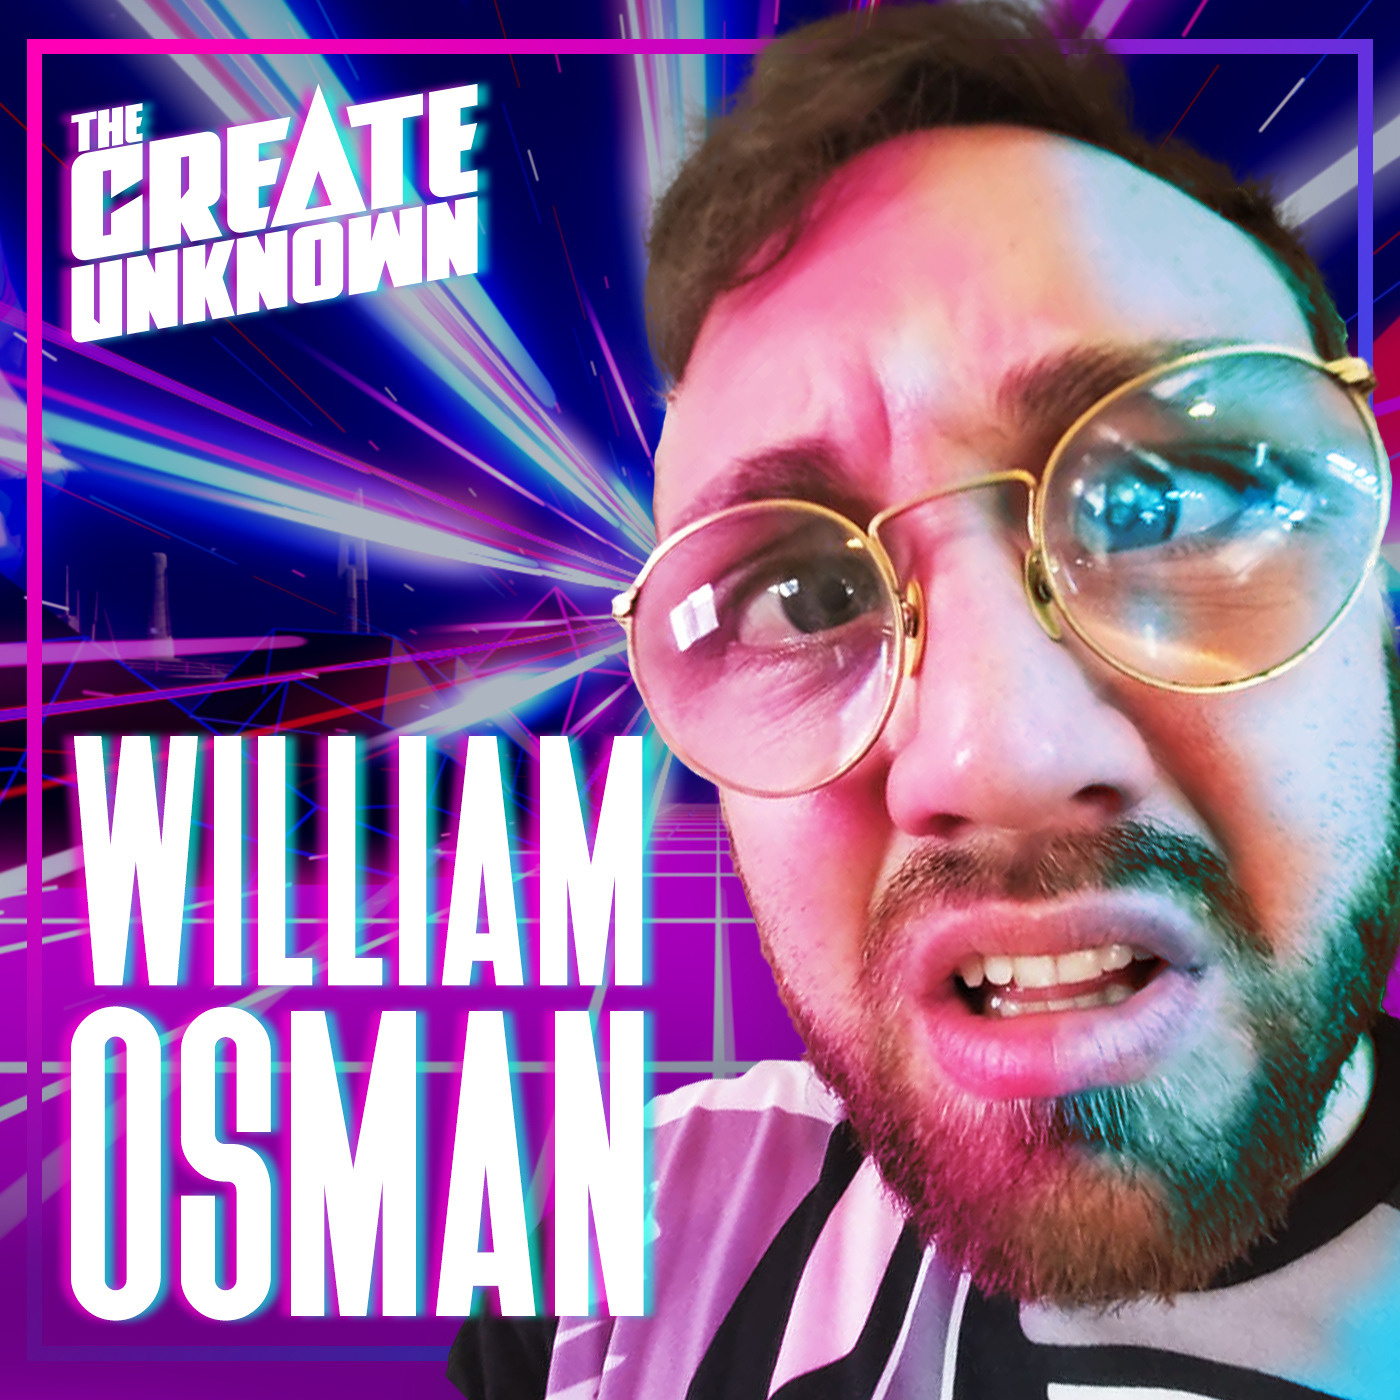 William Osman enters The Create Unknown